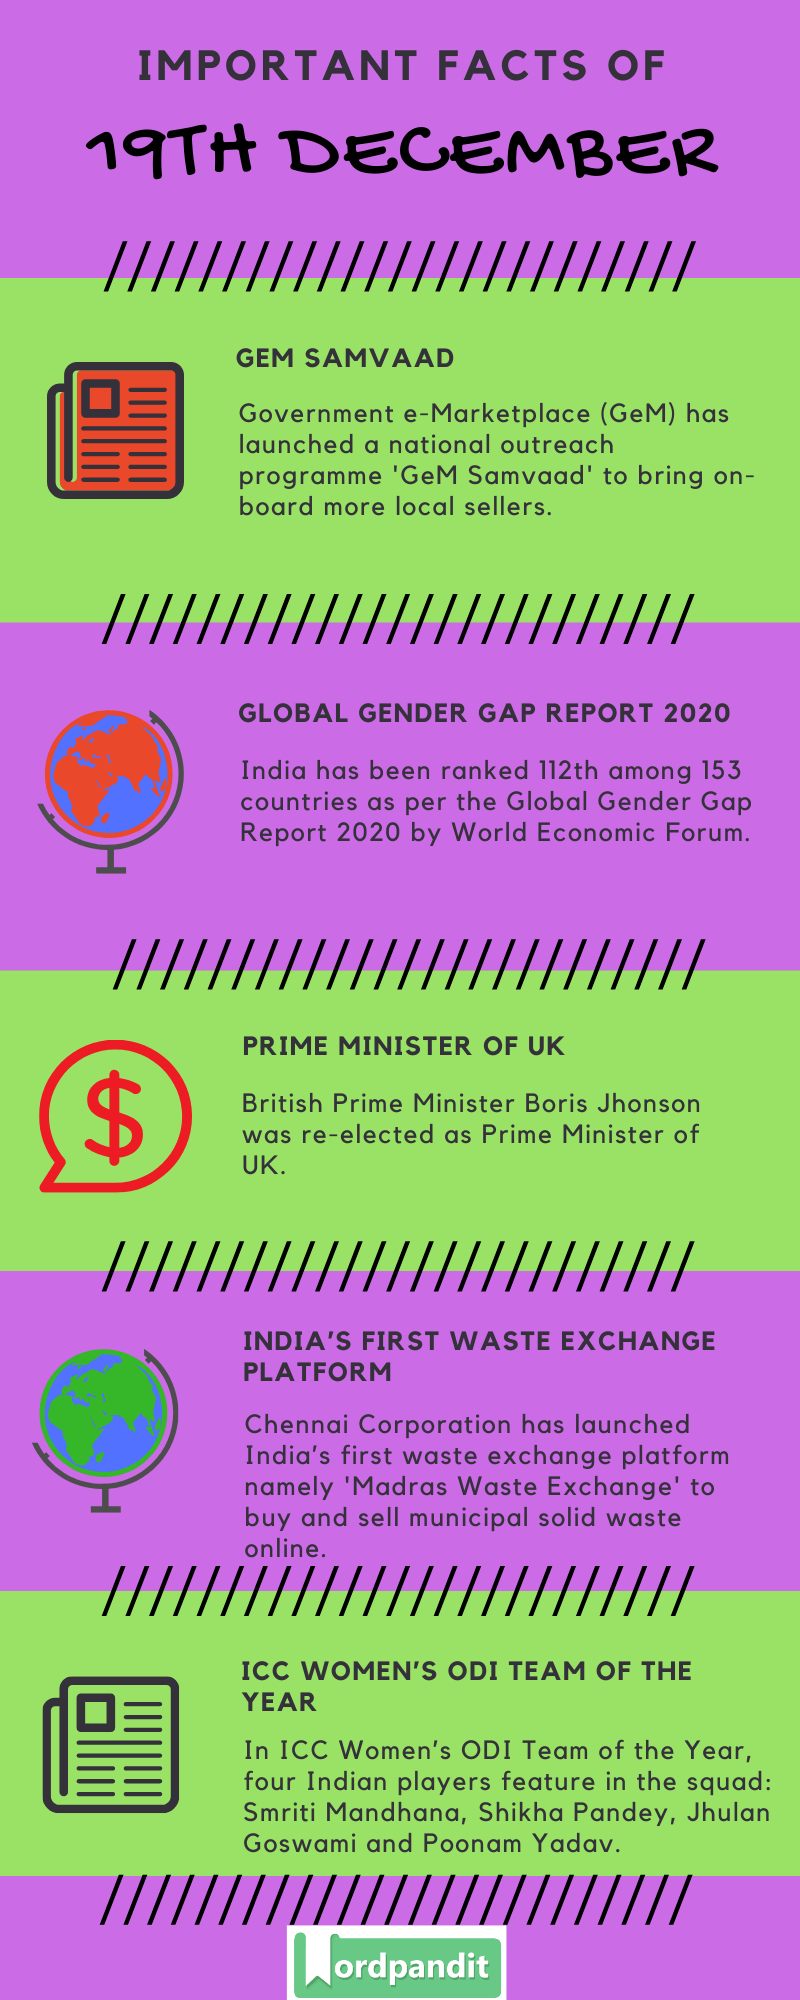 Daily Current Affairs 19 December 2019 Current Affairs Quiz 19 December 2019 Current Affairs Infographic